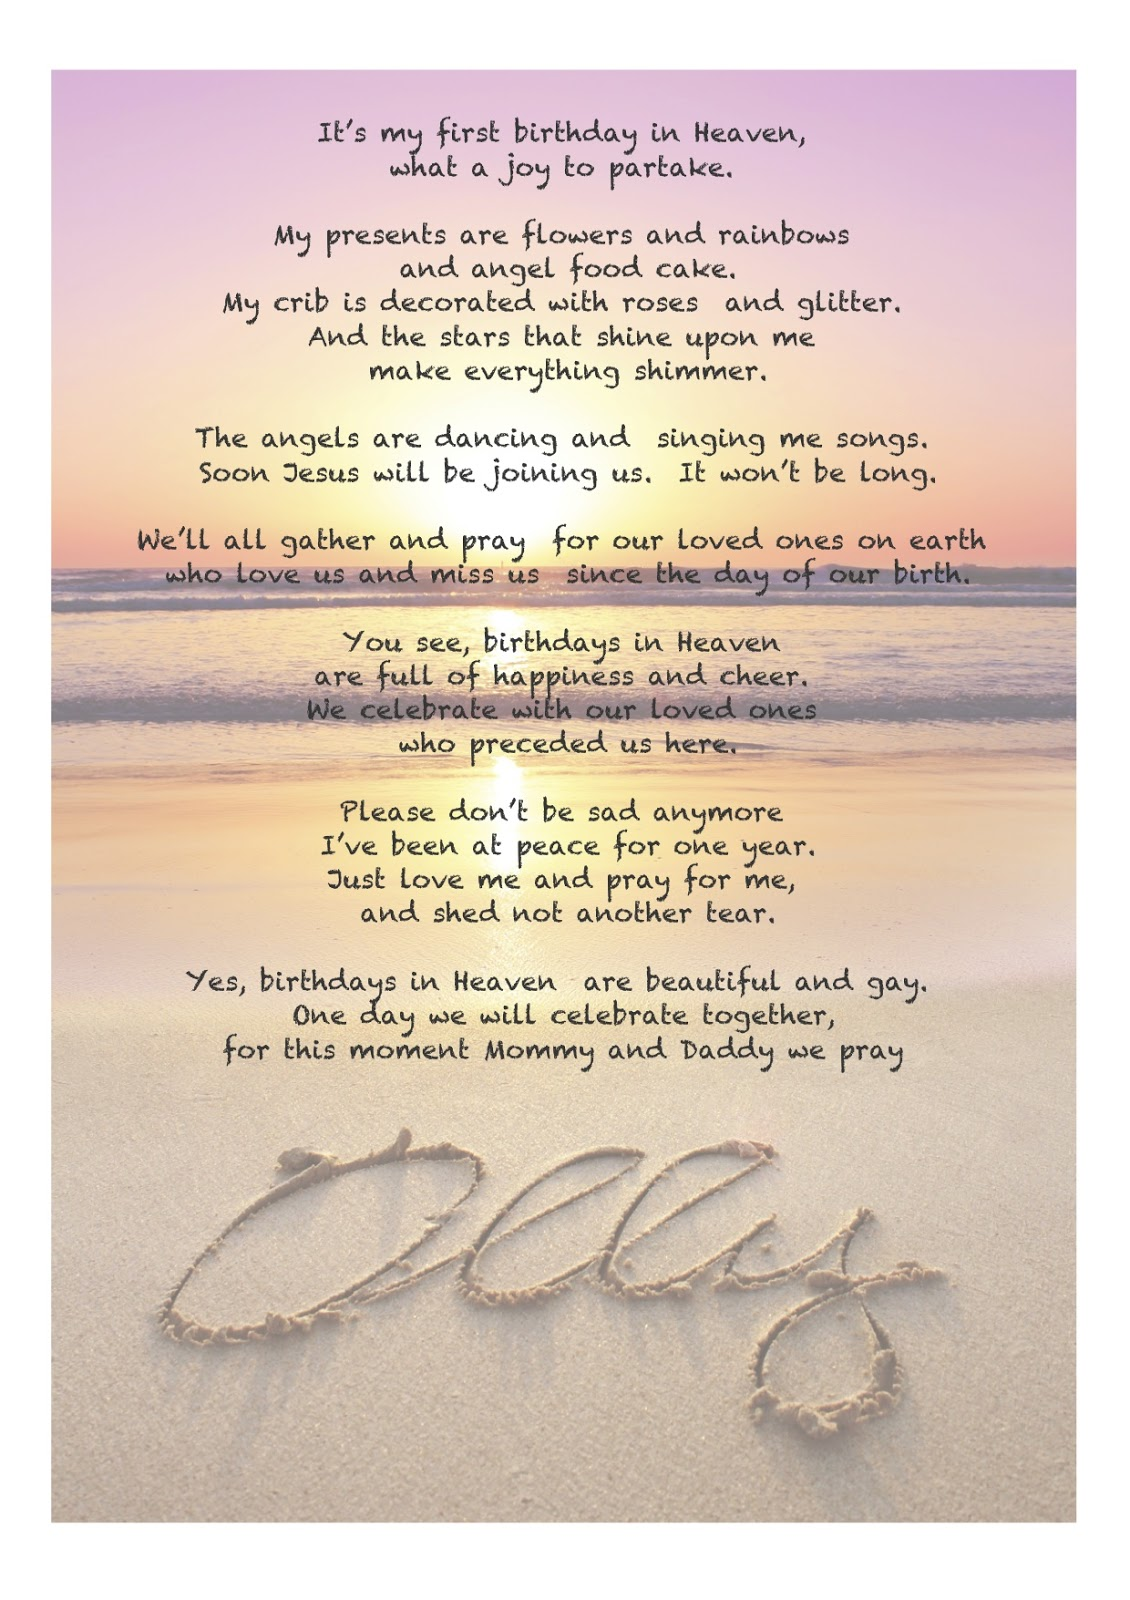 First Birthday in Heaven Quotes http://www.gypsywife.com/2013/01/firsts.html